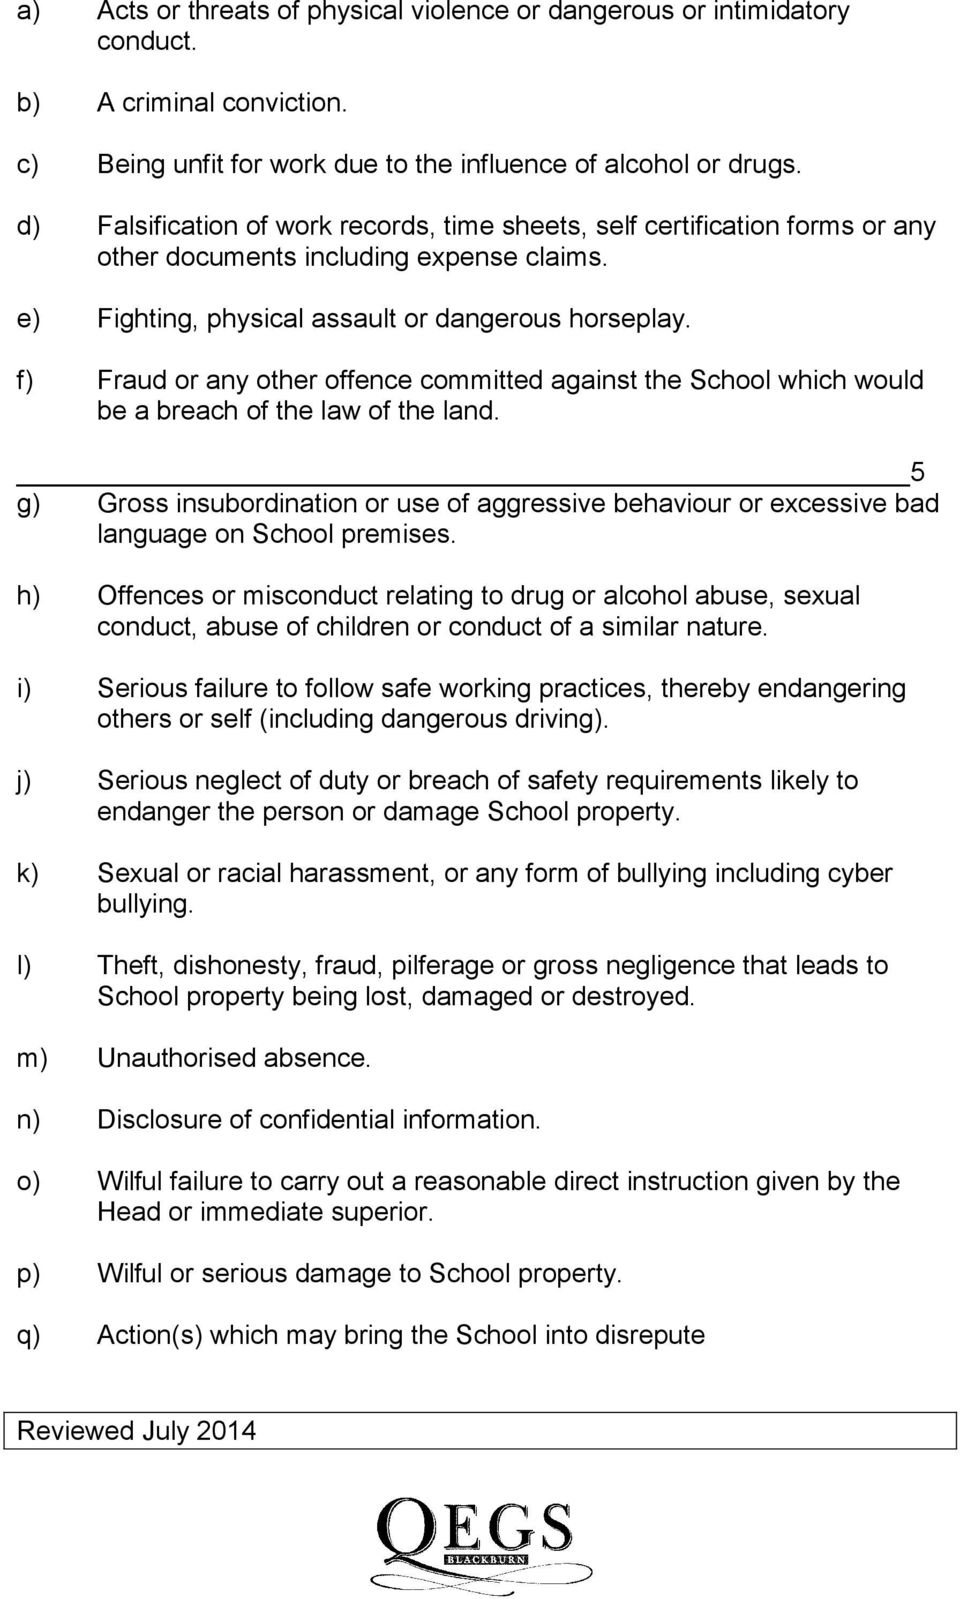 f) Fraud or any other offence committed against the School which would be a breach of the law of the land.